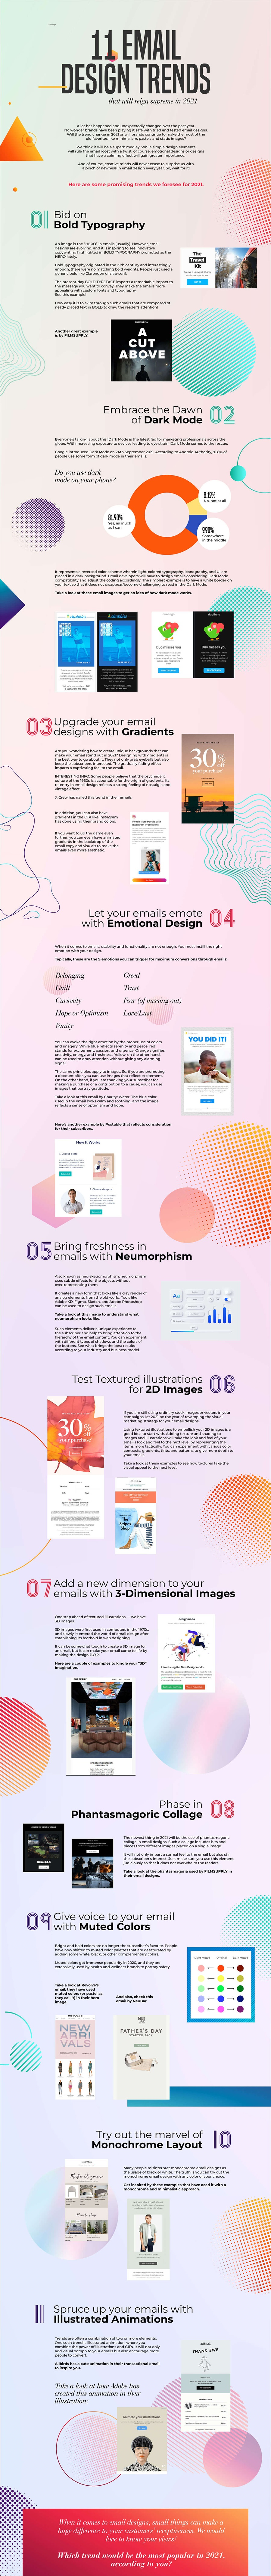 Infographic outlines email design trends